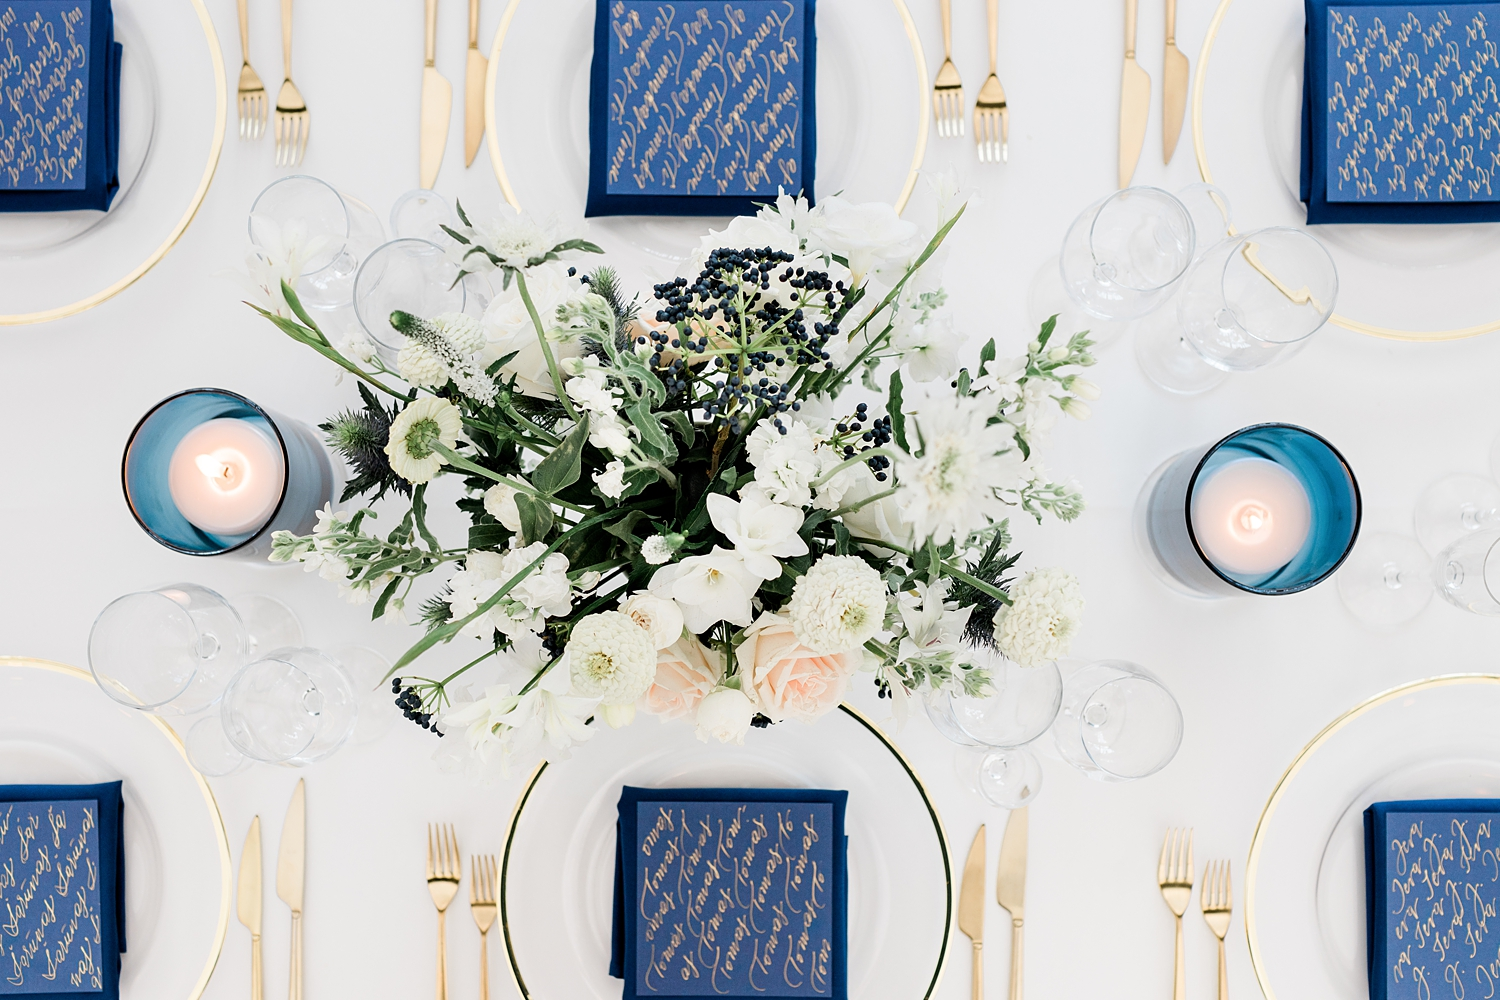 Top down view of place settings - photo by Jurgita Lukos Photography